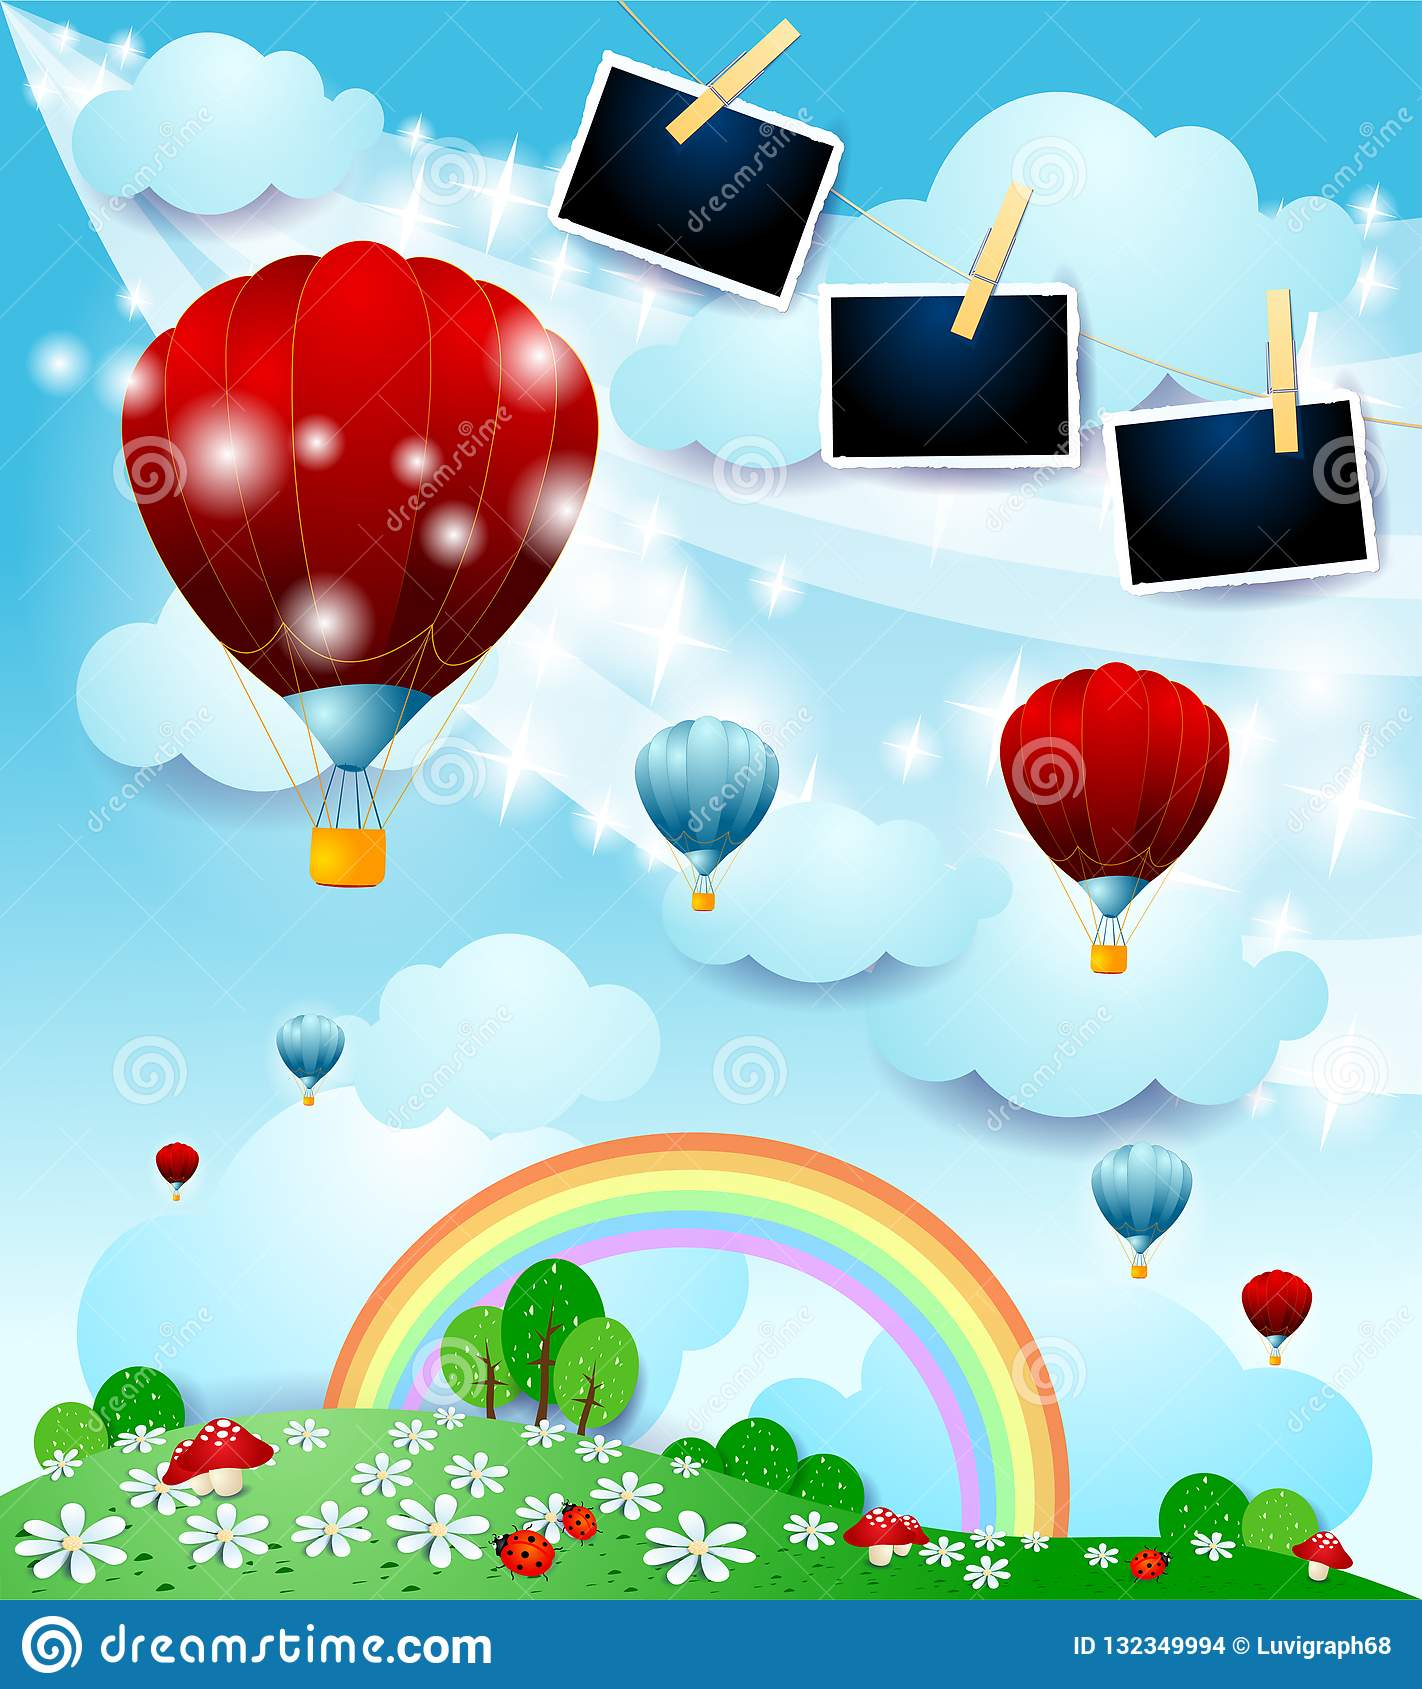 Fantasy Landscape With Hot Air Balloons And Photo Frames Stock